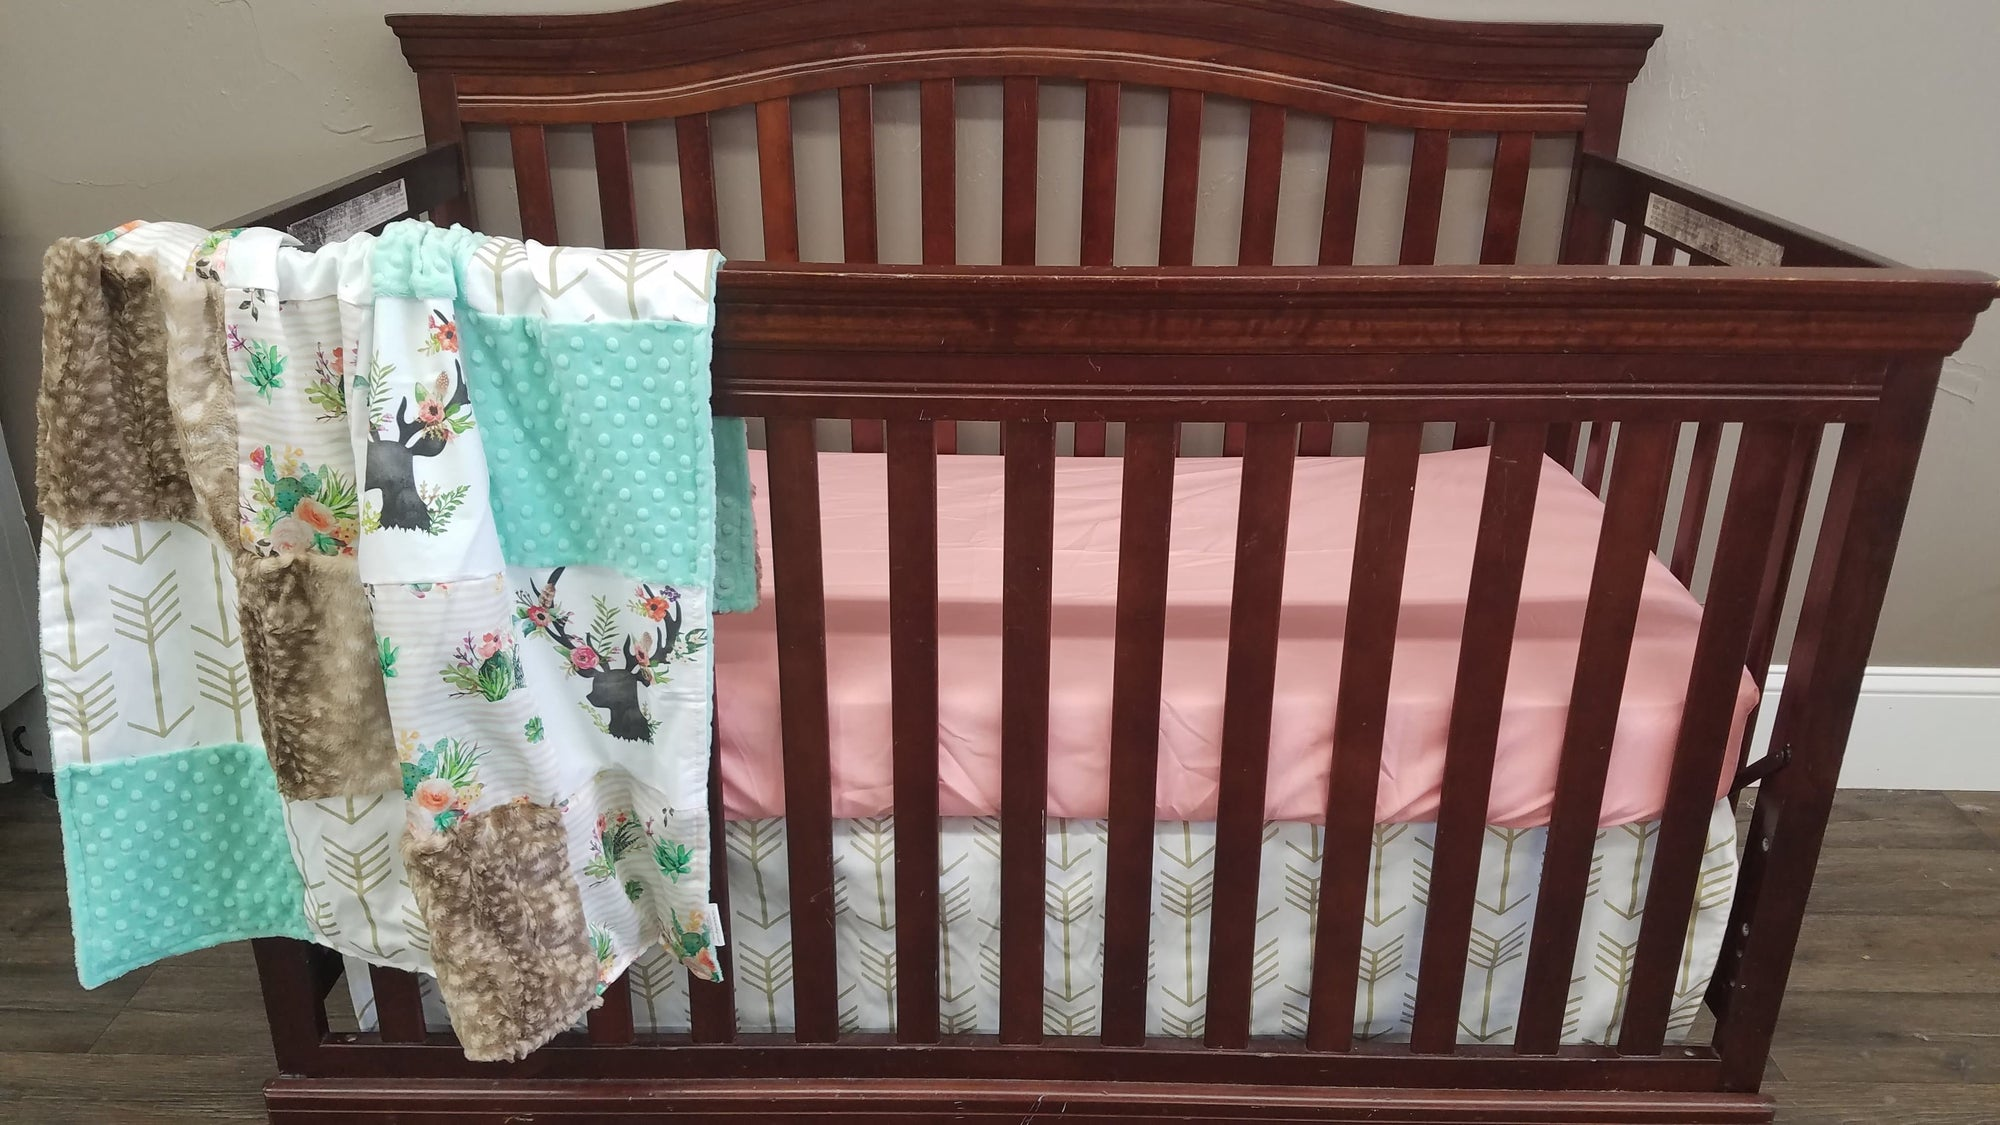 Custom Girl Crib Bedding - Cactus Stripe, Floral Antlers, Coral, Fawn Minky, Arrow, Antler and Cactus Crib Bedding